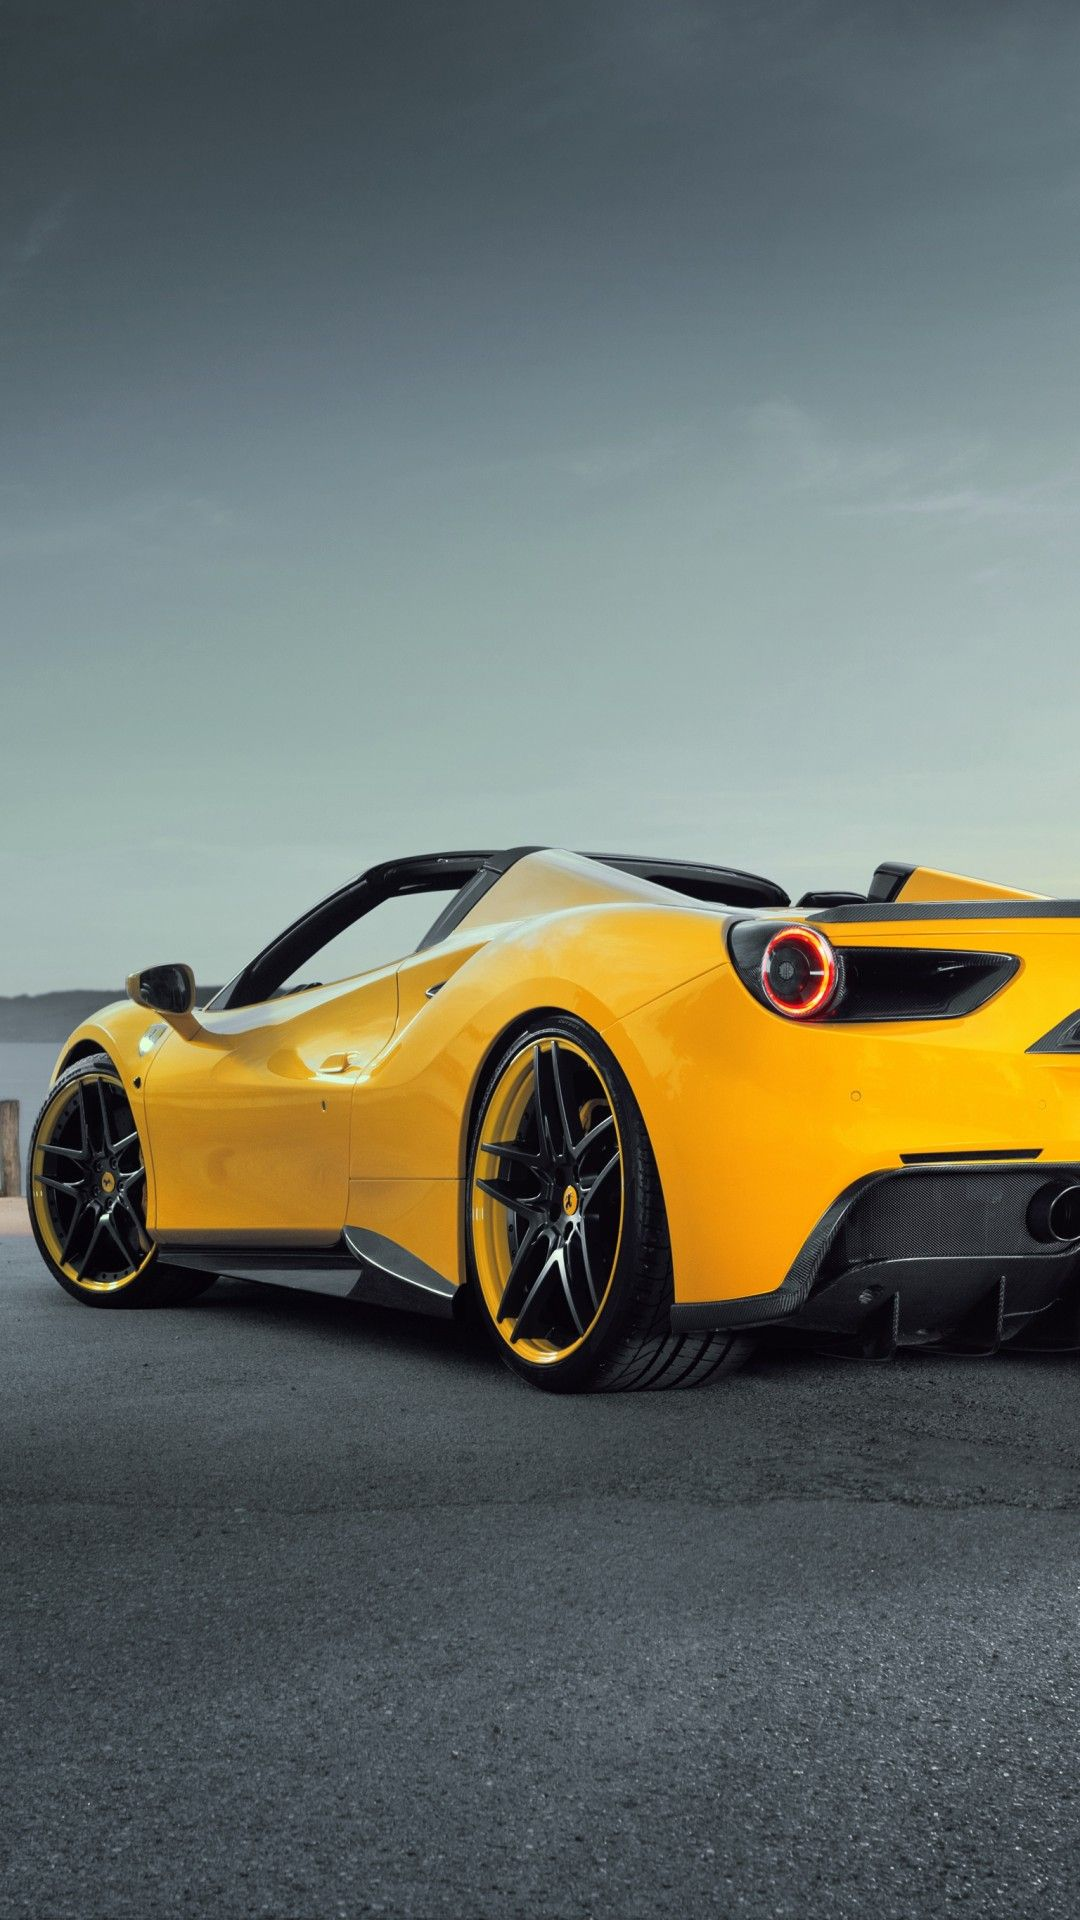 Ferrari 488 Spider Yellow Rear View Super Cars Ferrari Ferrari 488